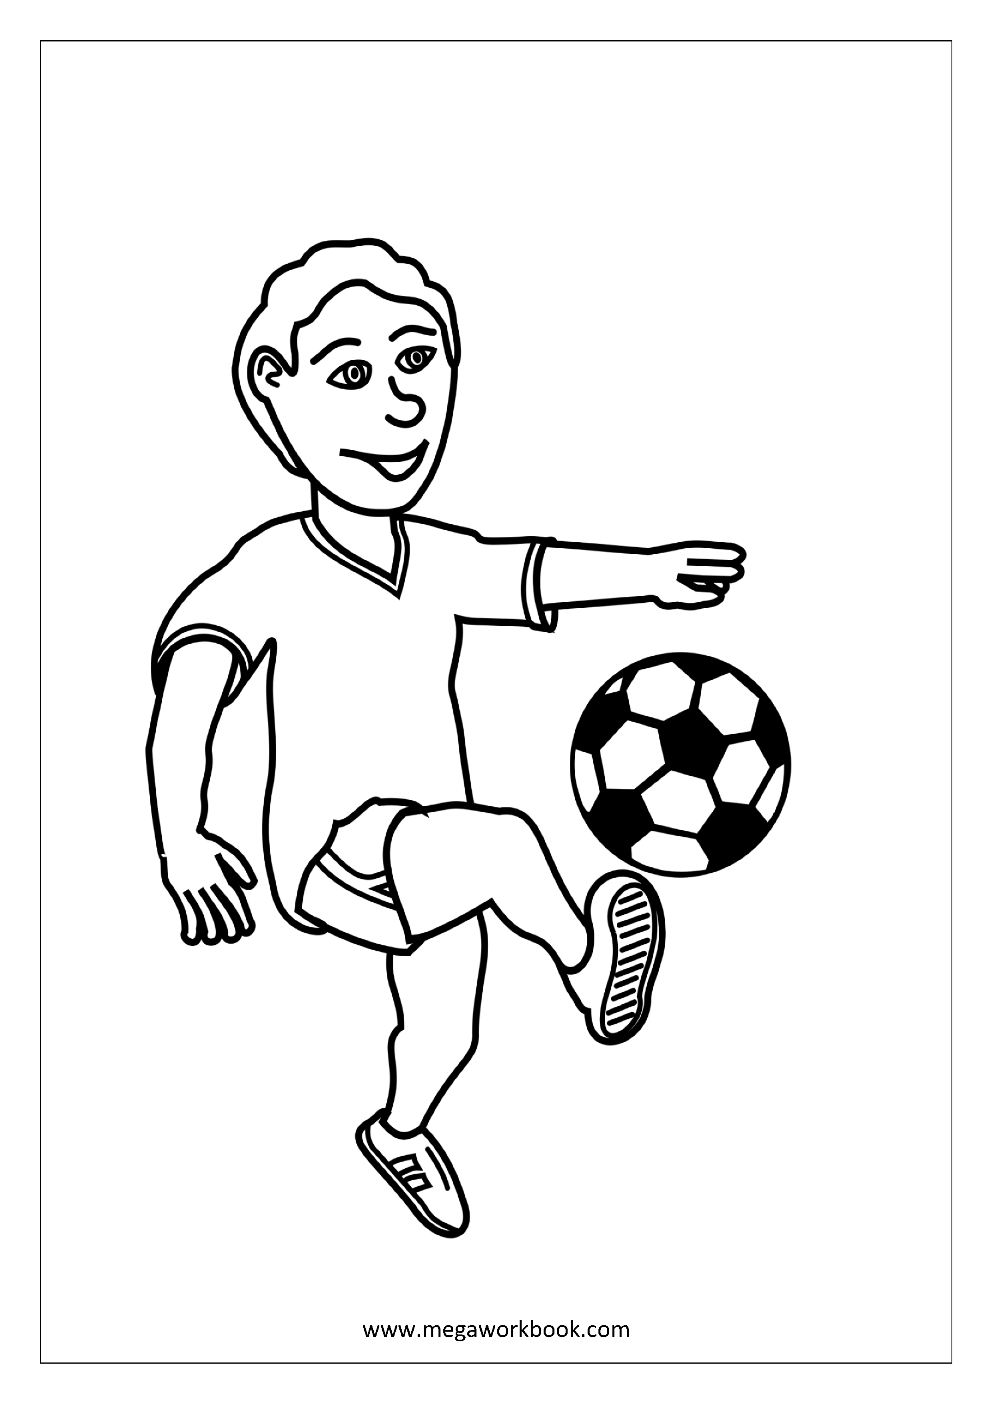 colouring football fighting football coloring page woo jr kids activities colouring football